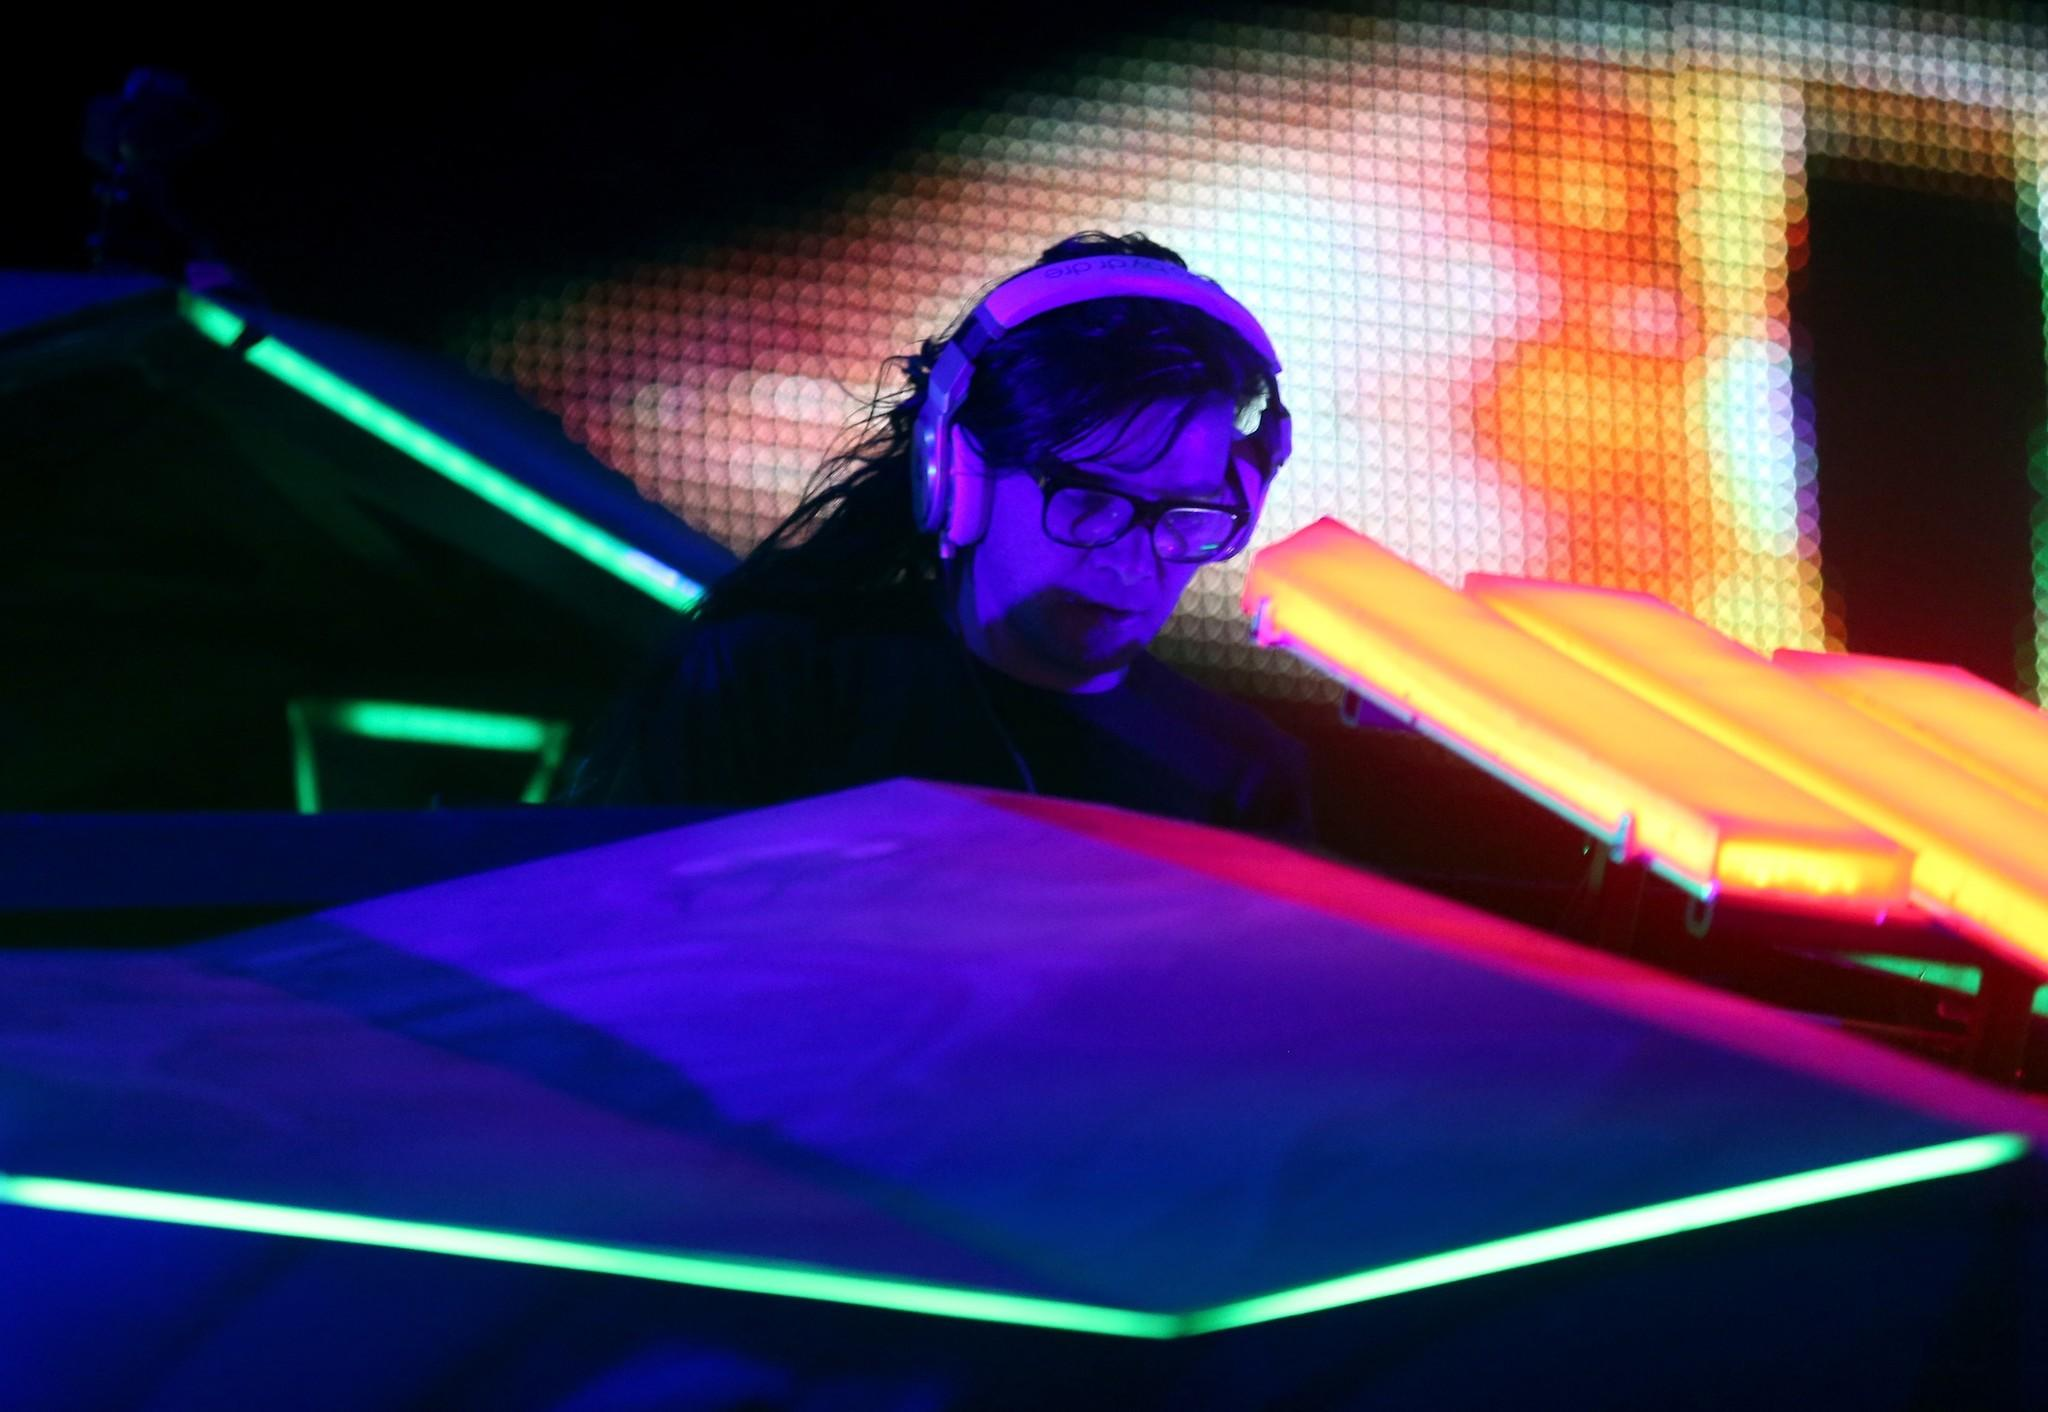 Skrillex performs onstage during day 2 of the 2014 Coachella Valley Music & Arts Festival.